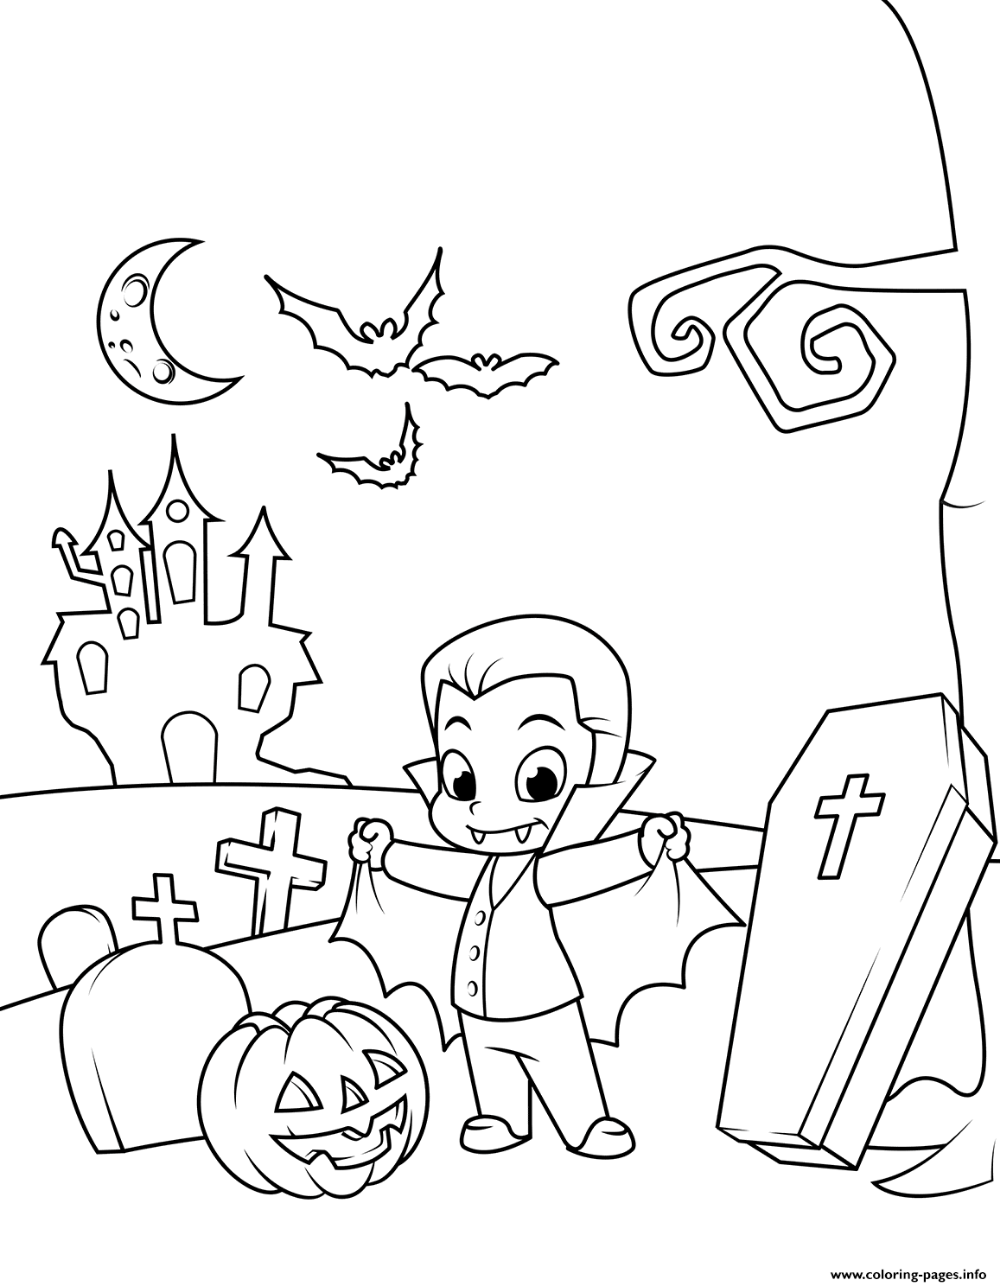 Print Cute Count Dracula In The Cemetery Halloween Coloring Pages Halloween Coloring Pages Halloween Coloring Pages Printable Coloring Pages